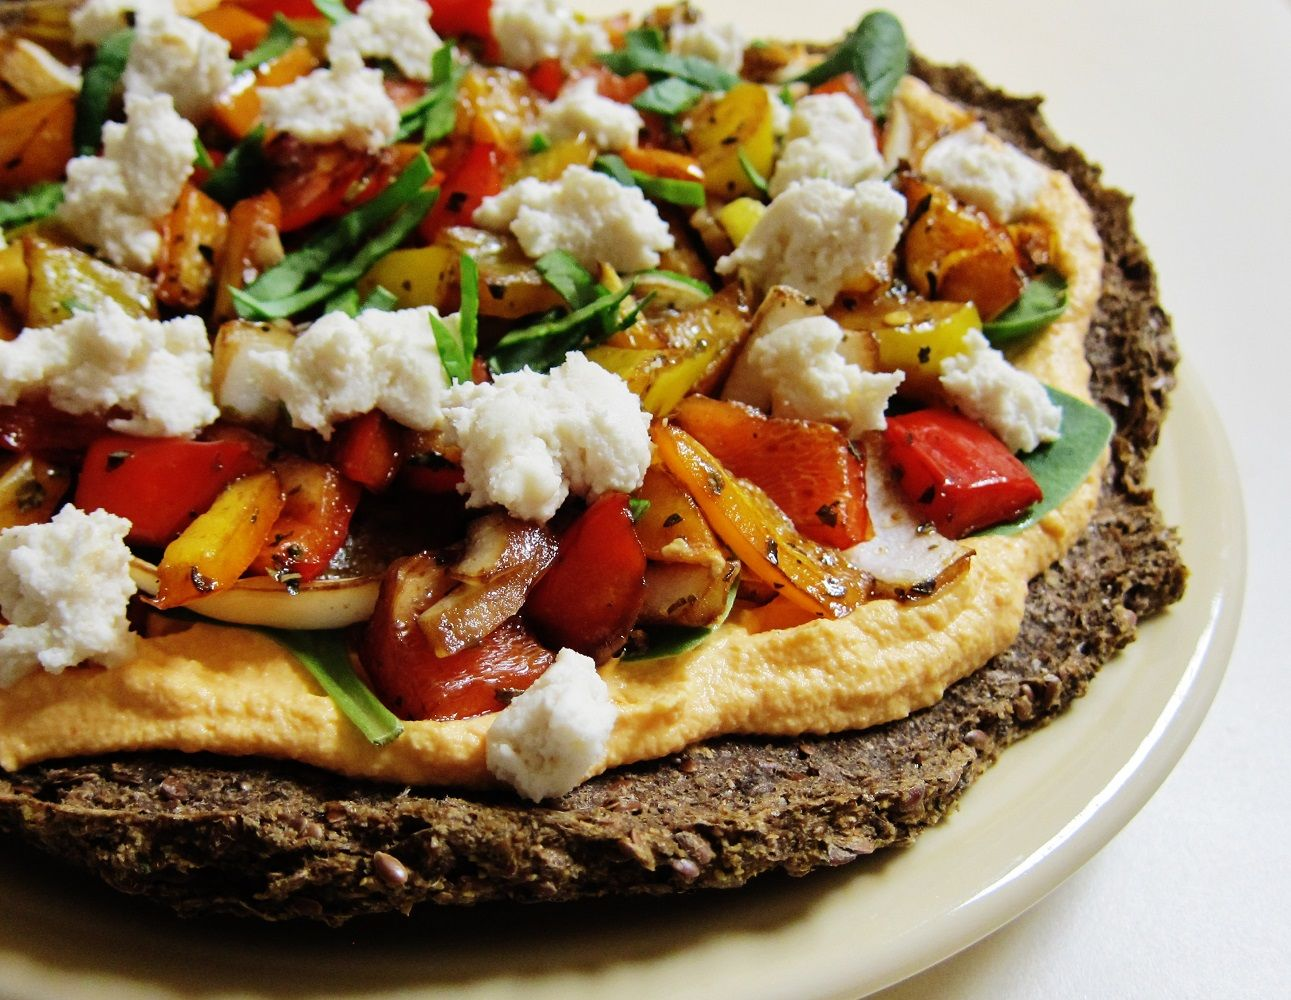 Raw on 10 a day or less raw roasted pepper pizza recipe and easy affordable raw food recipes raw meal plans menus vegan recipes and lifestyle tips forumfinder Images